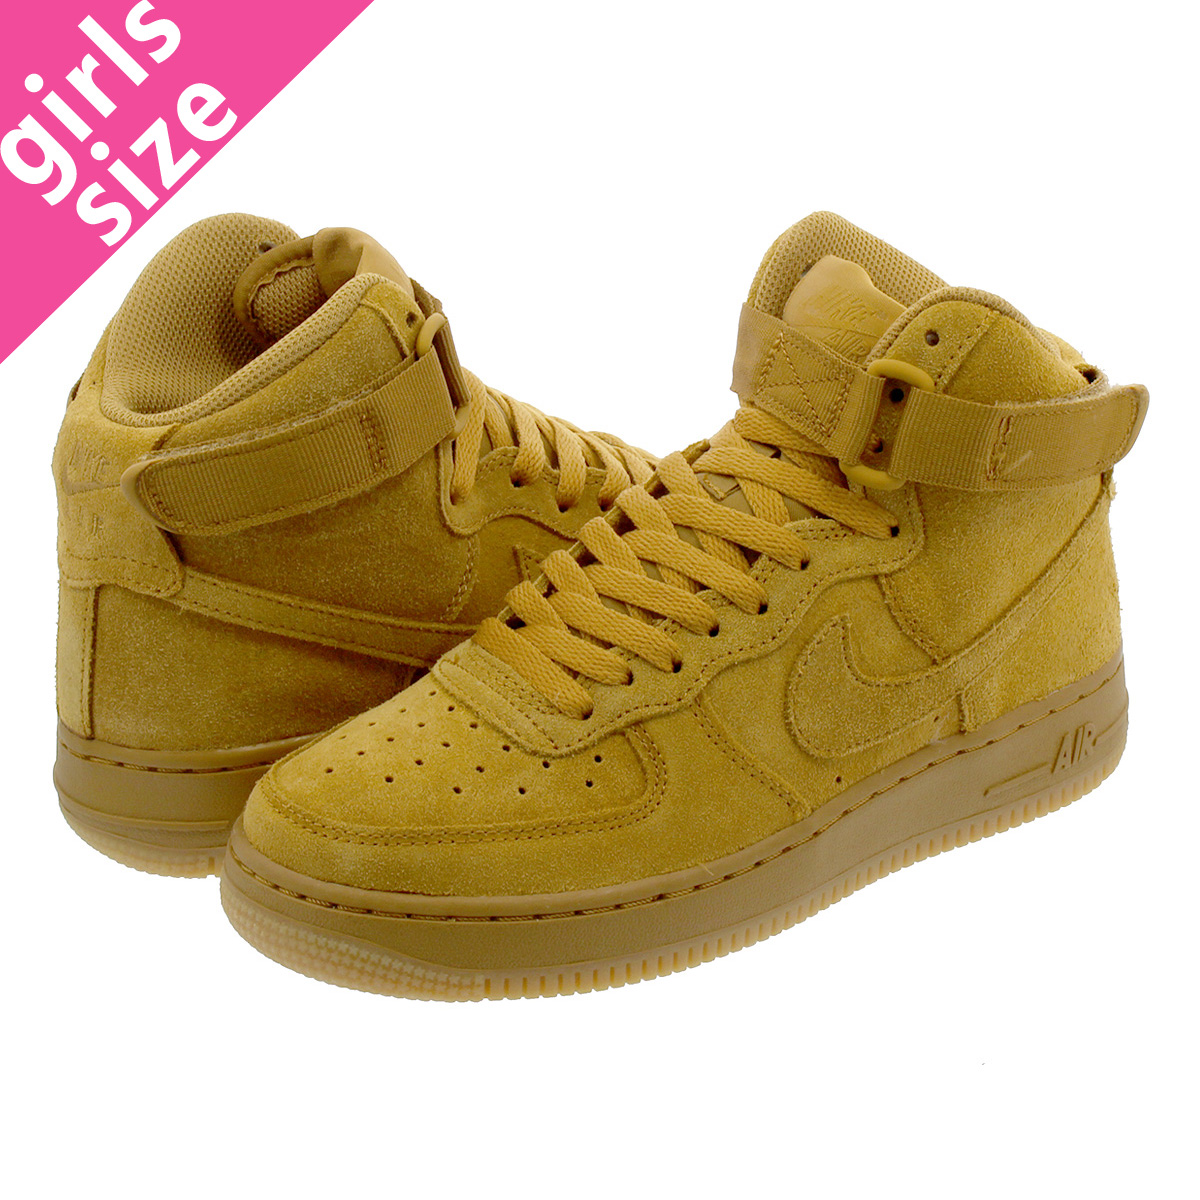 NIKE AIR FORCE 1 HIGH LV8 GS Nike air force 1 high LV8 GS WHEAT/GUM LIGHT  BROWN 807,617-701